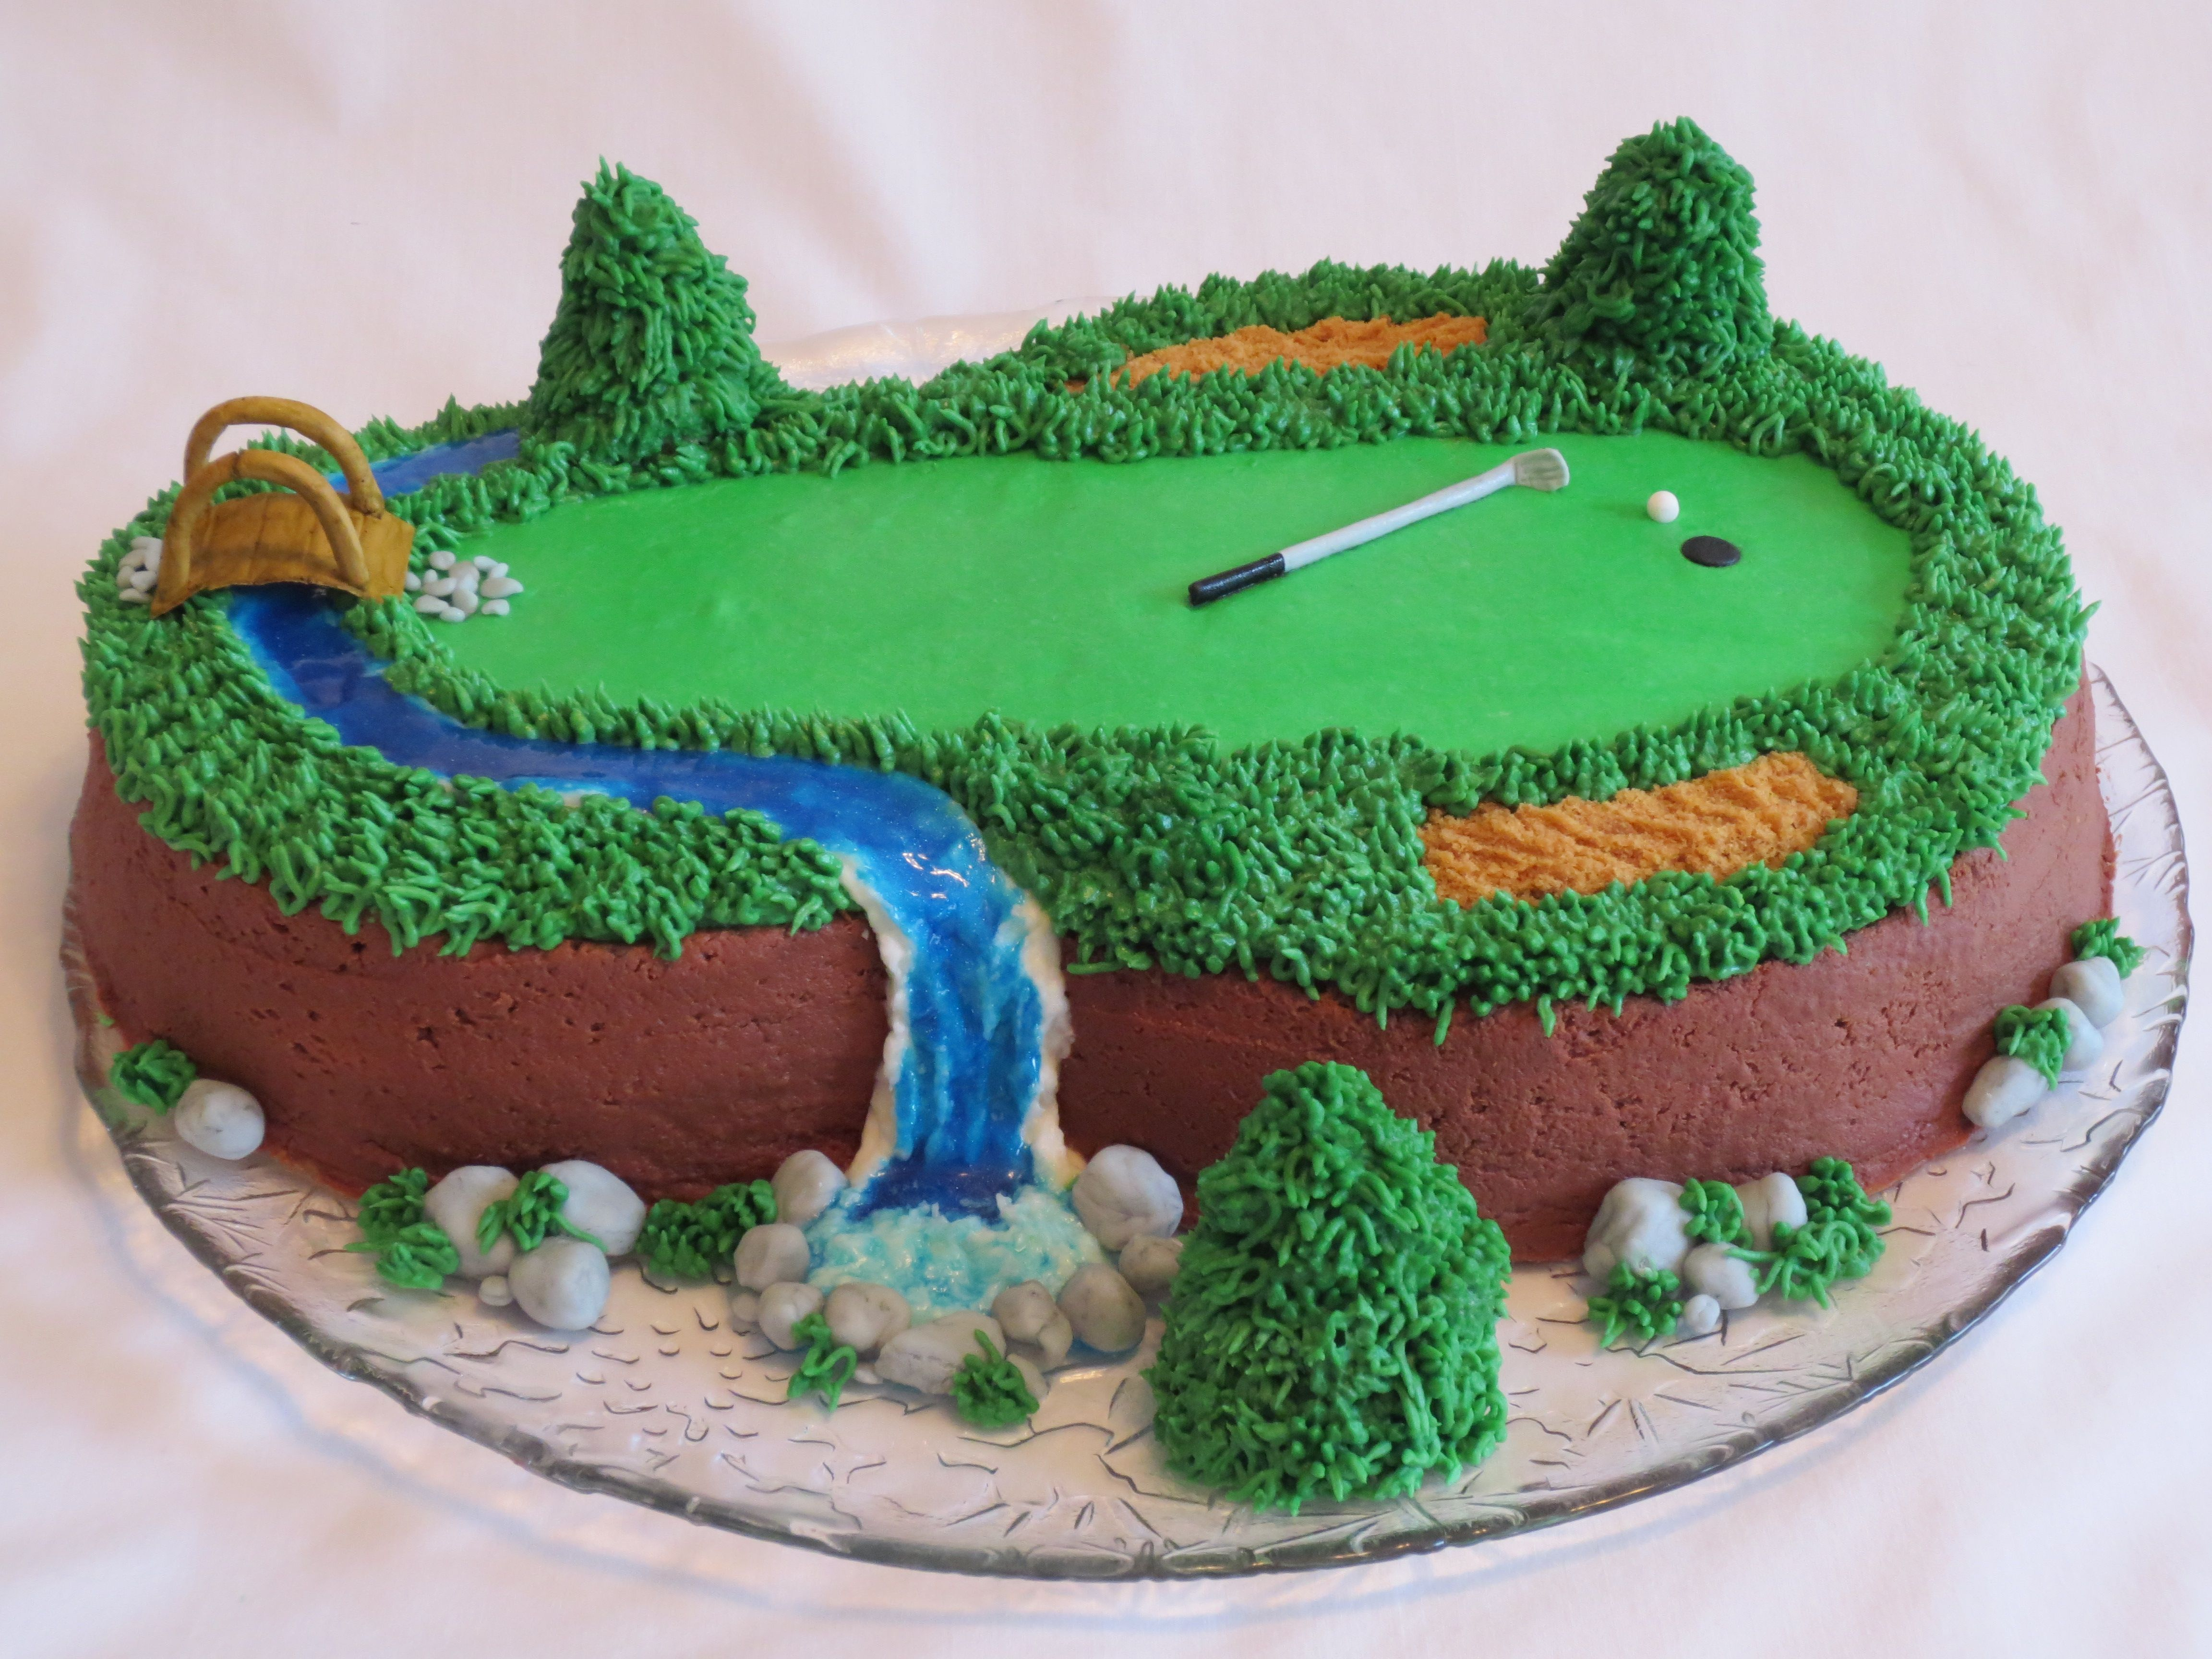 Golf Shout Out To Jessmar For The Idea Thanks I Wanted Make A Themed Cake My Husband S Birthday It Vanilla Gluten Free With